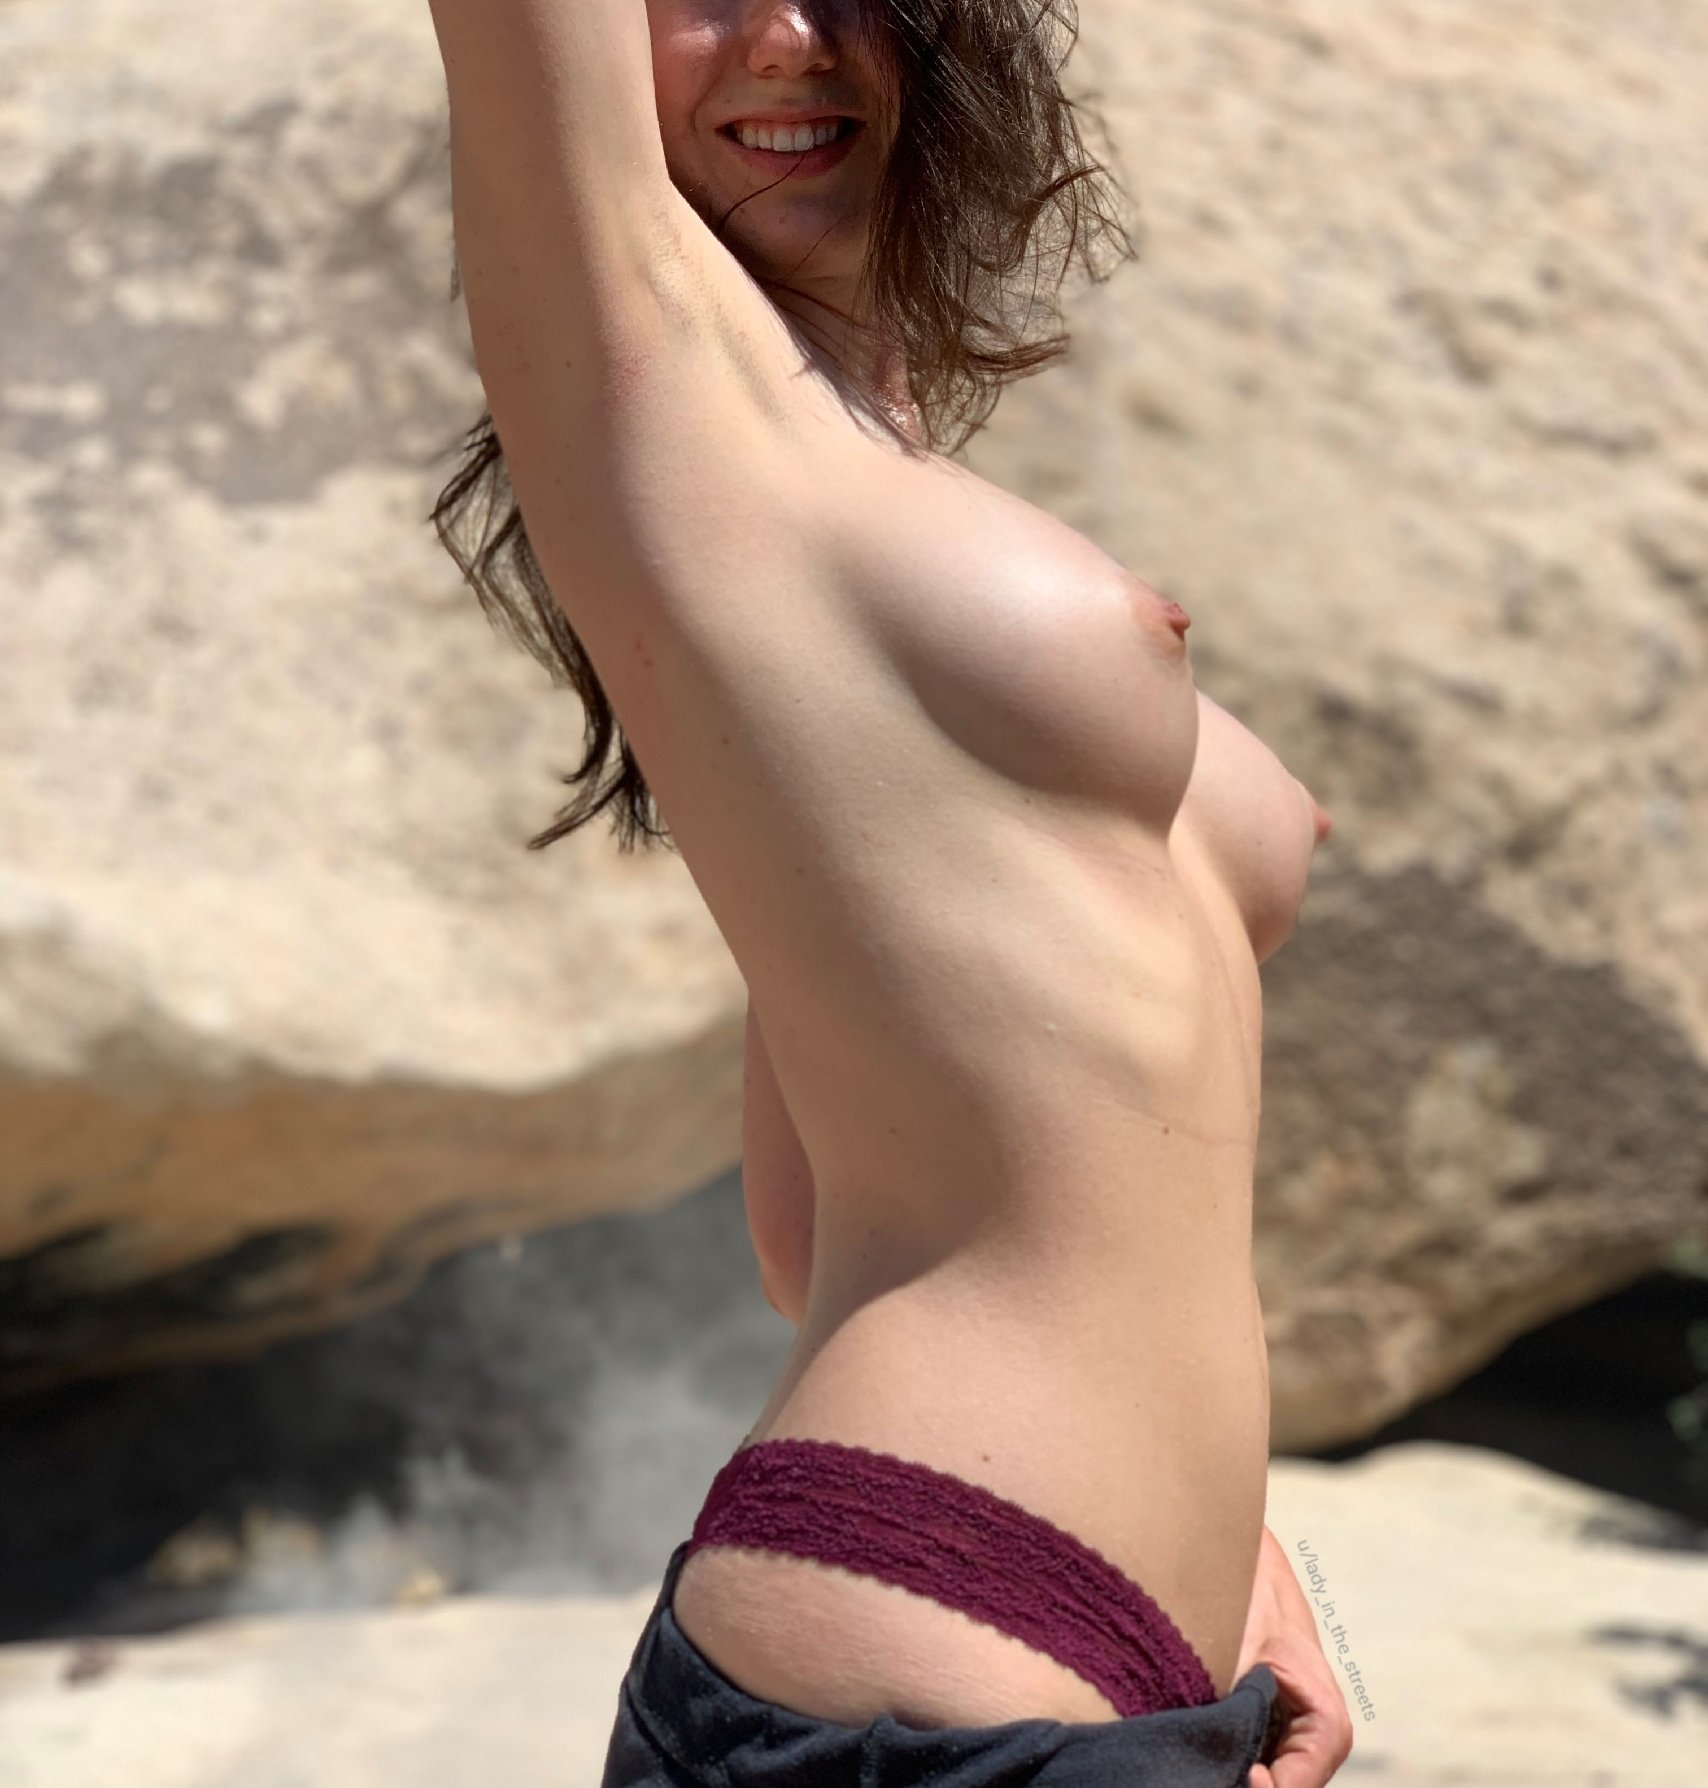 Lady In The Streets Lady In The Streets Onlyfans Nude Leaks 0019